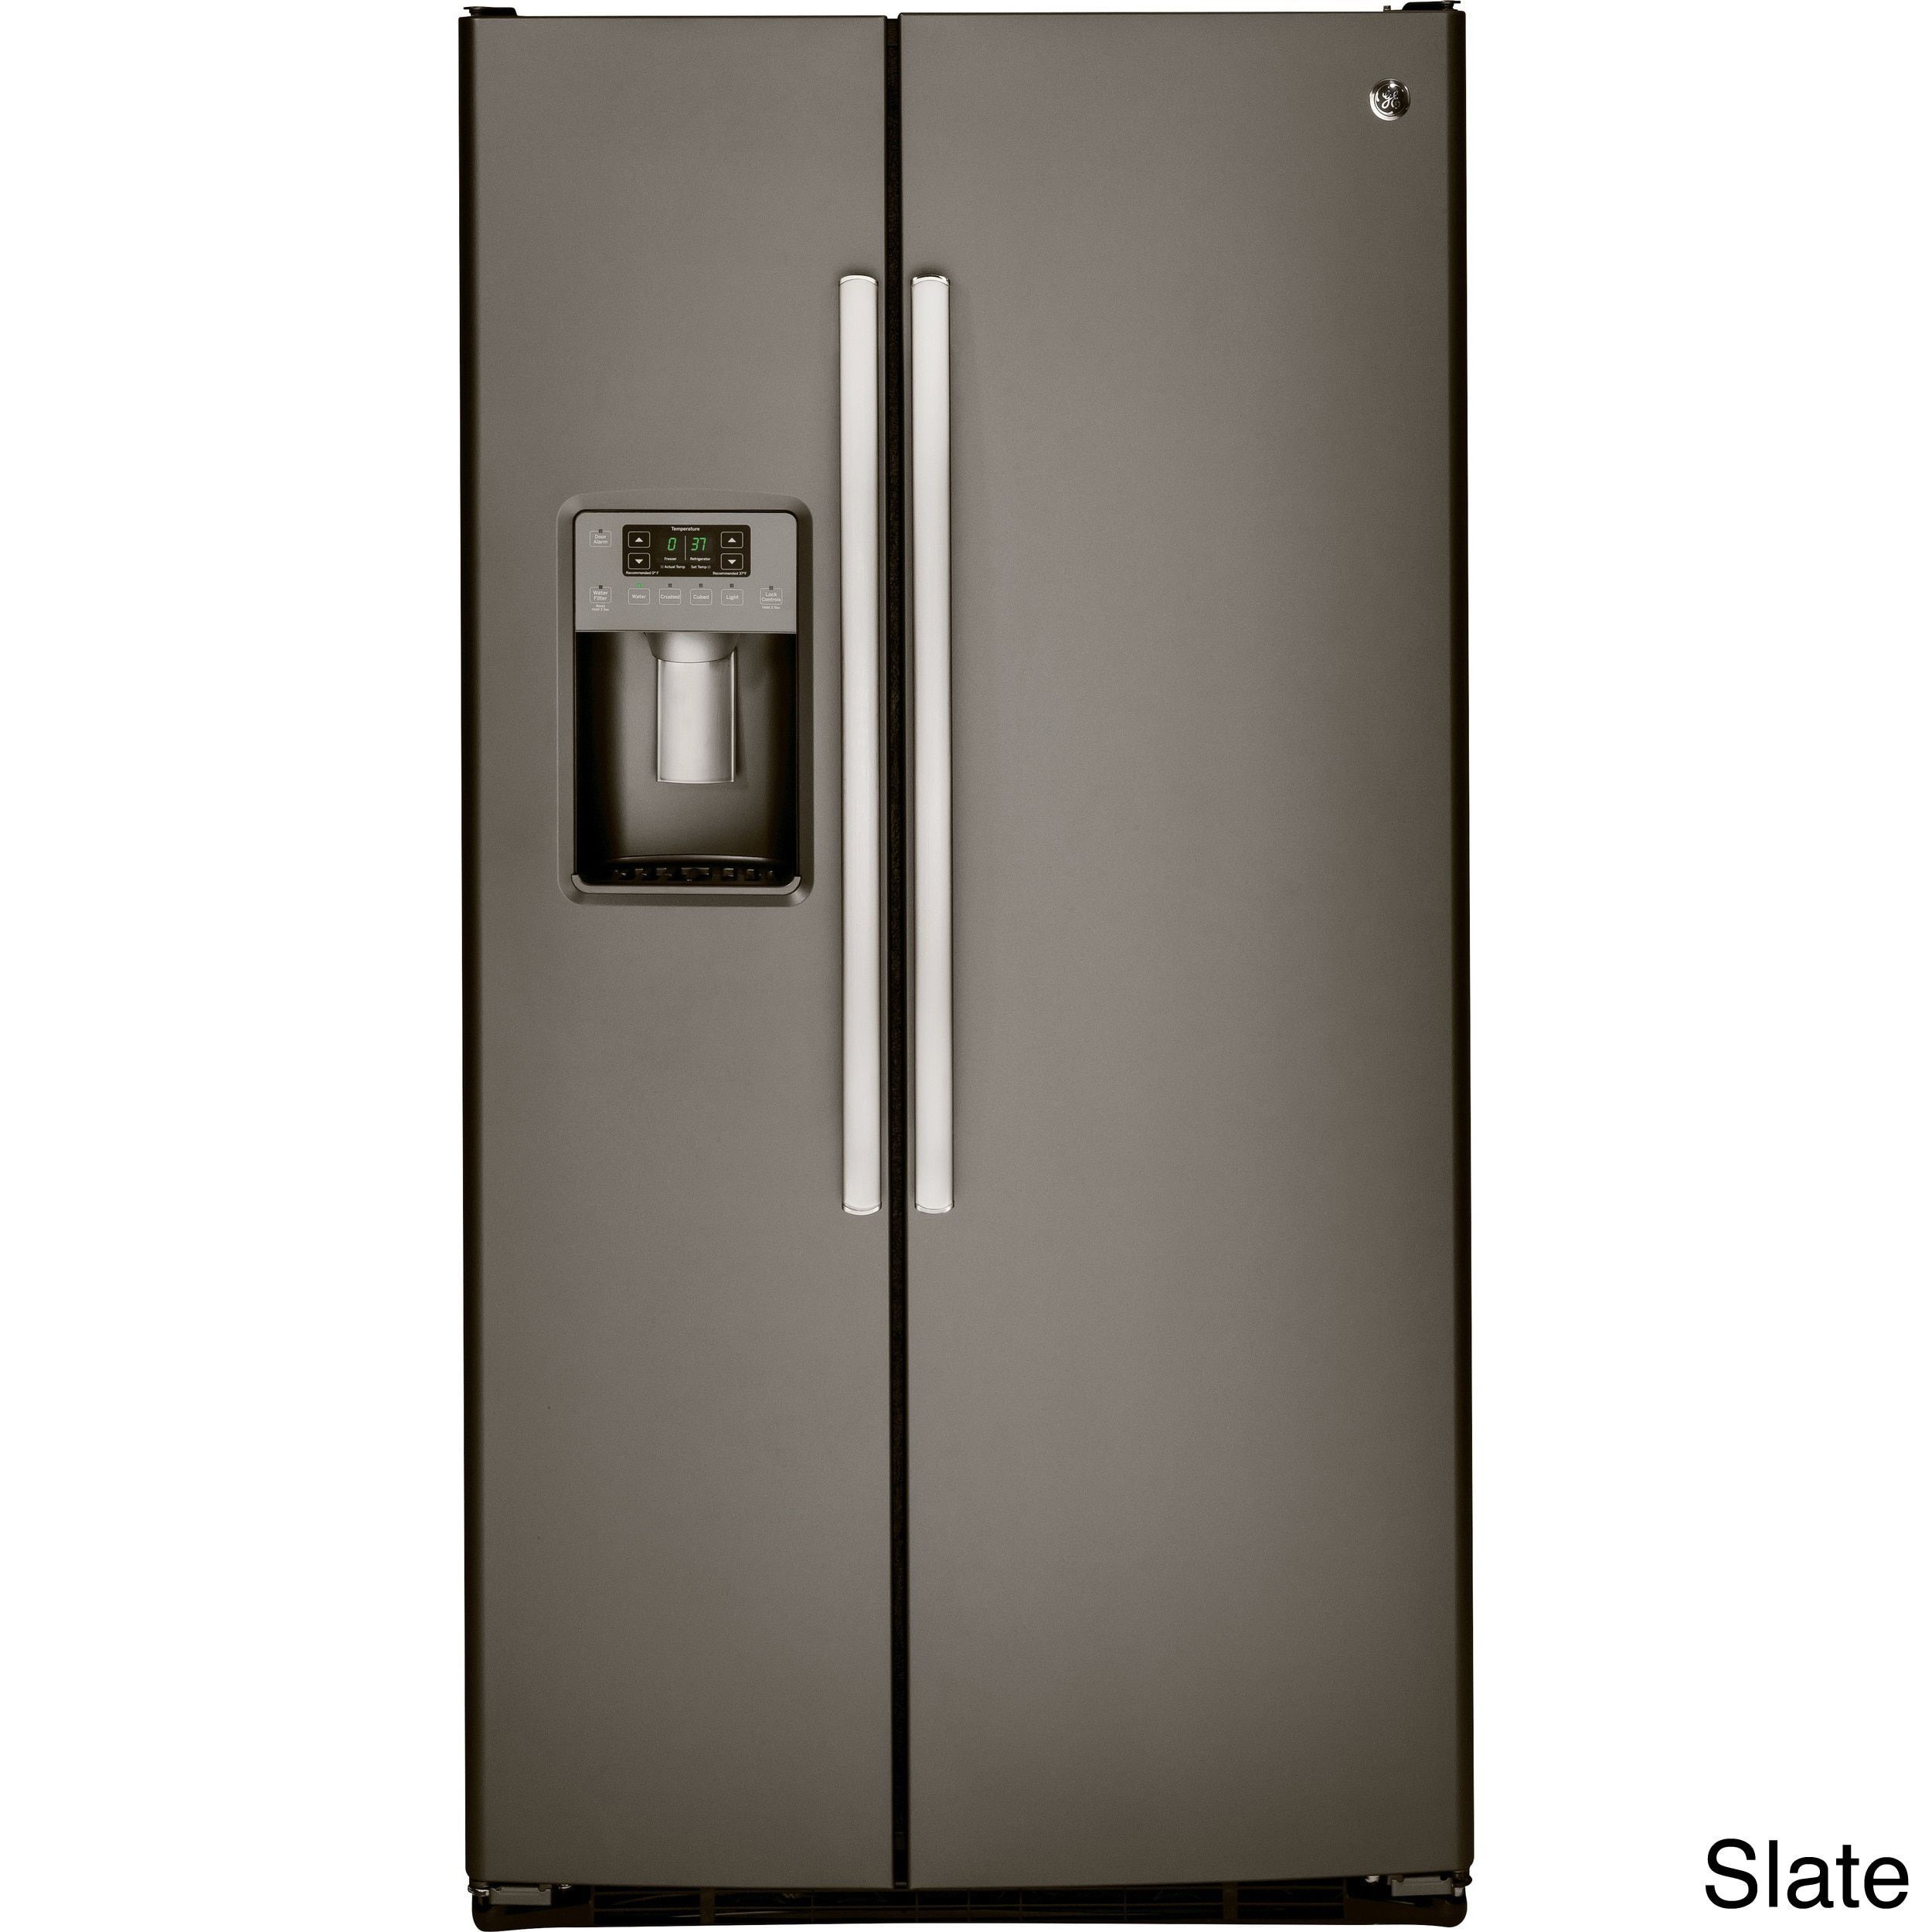 GE 25 4 Cubic Feet Side by side Refrigerator Black Plastic